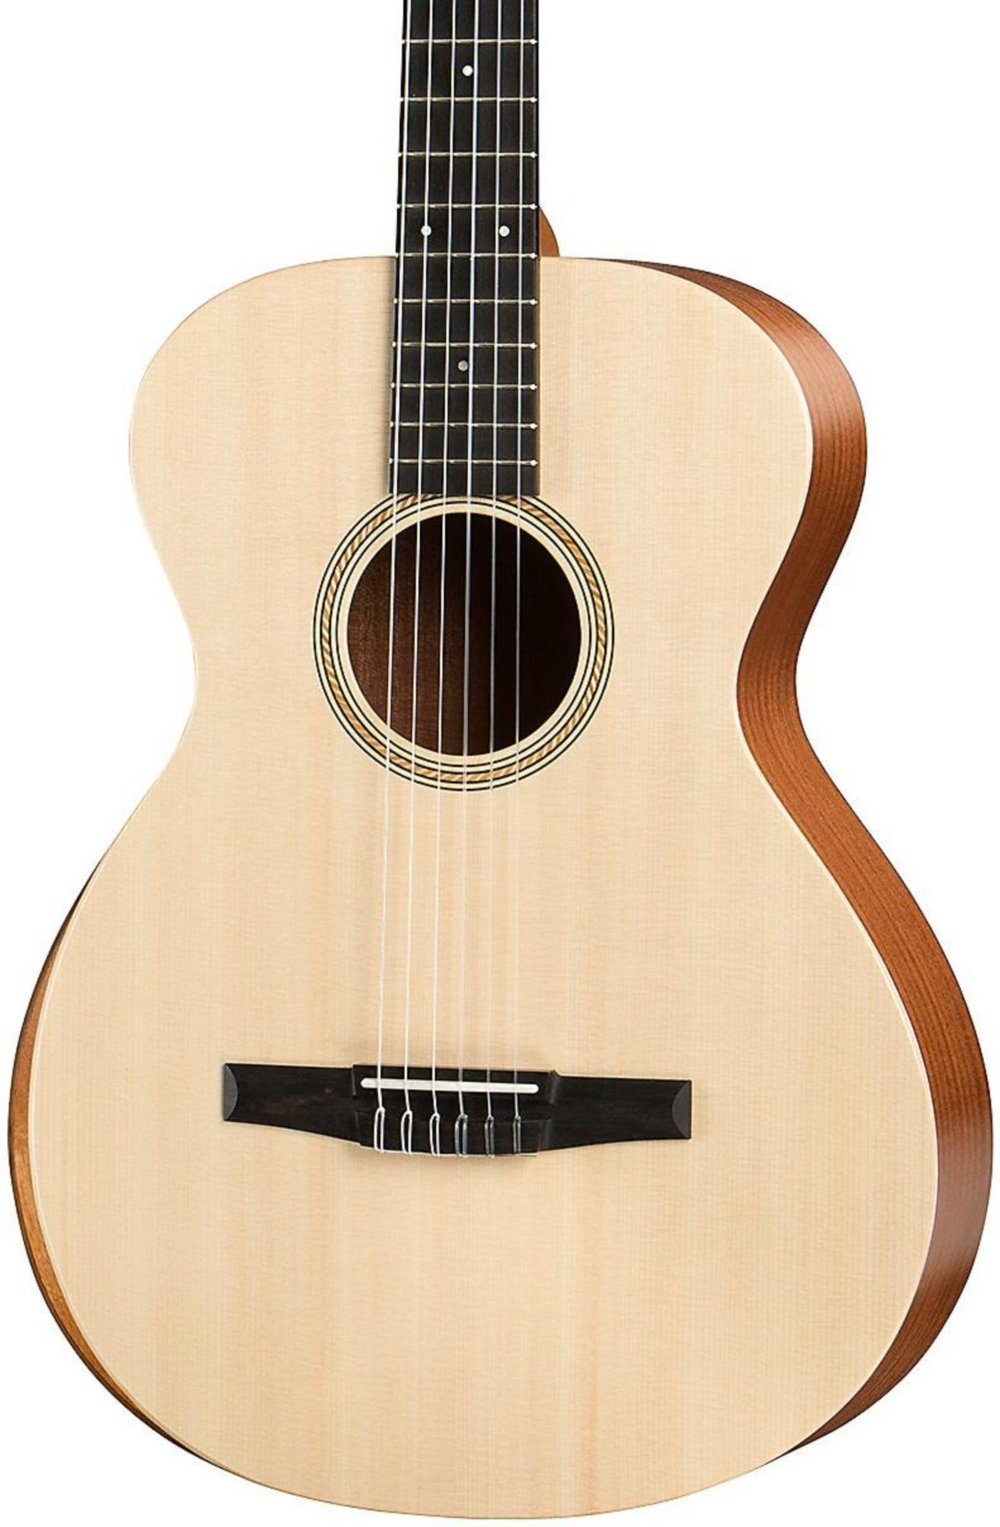 Taylor Academy Series Academy 12e-N Grand Concert Nylon Acoustic Guitar Natural by Taylor